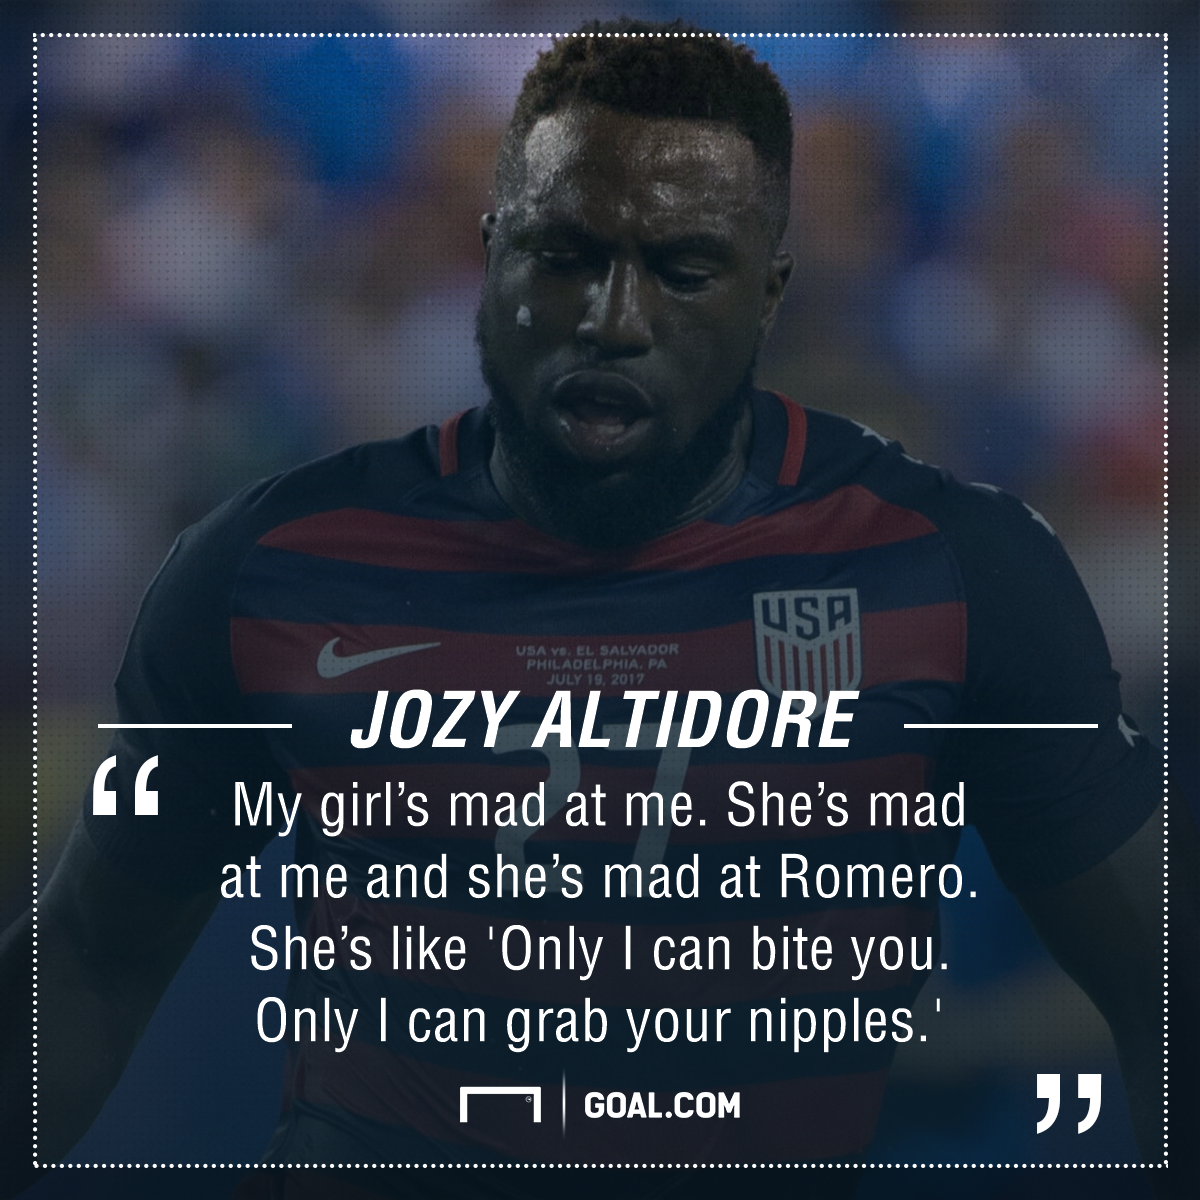 Altidore on biting incident: 'My girl's mad at me'